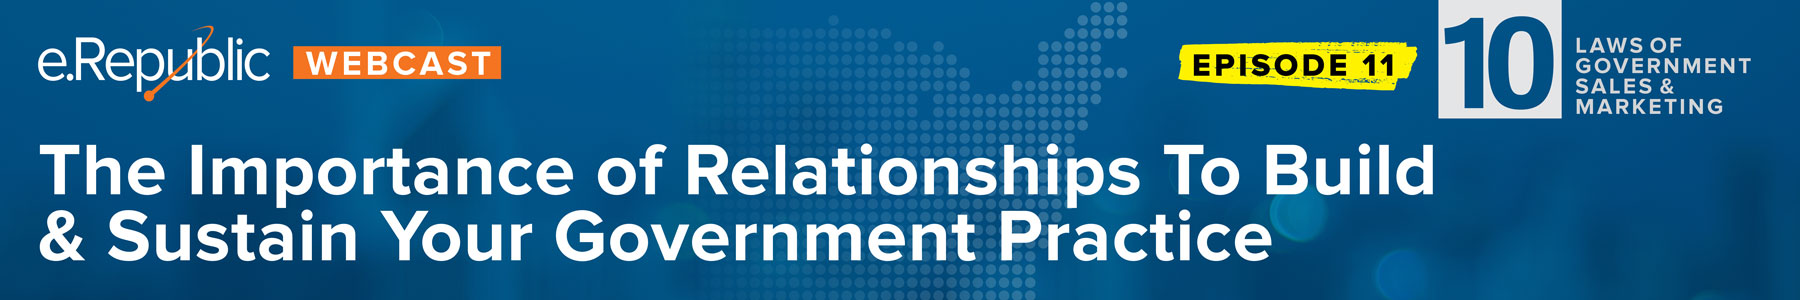 The Importance of Relationships To Build & Sustain Your Government Practice